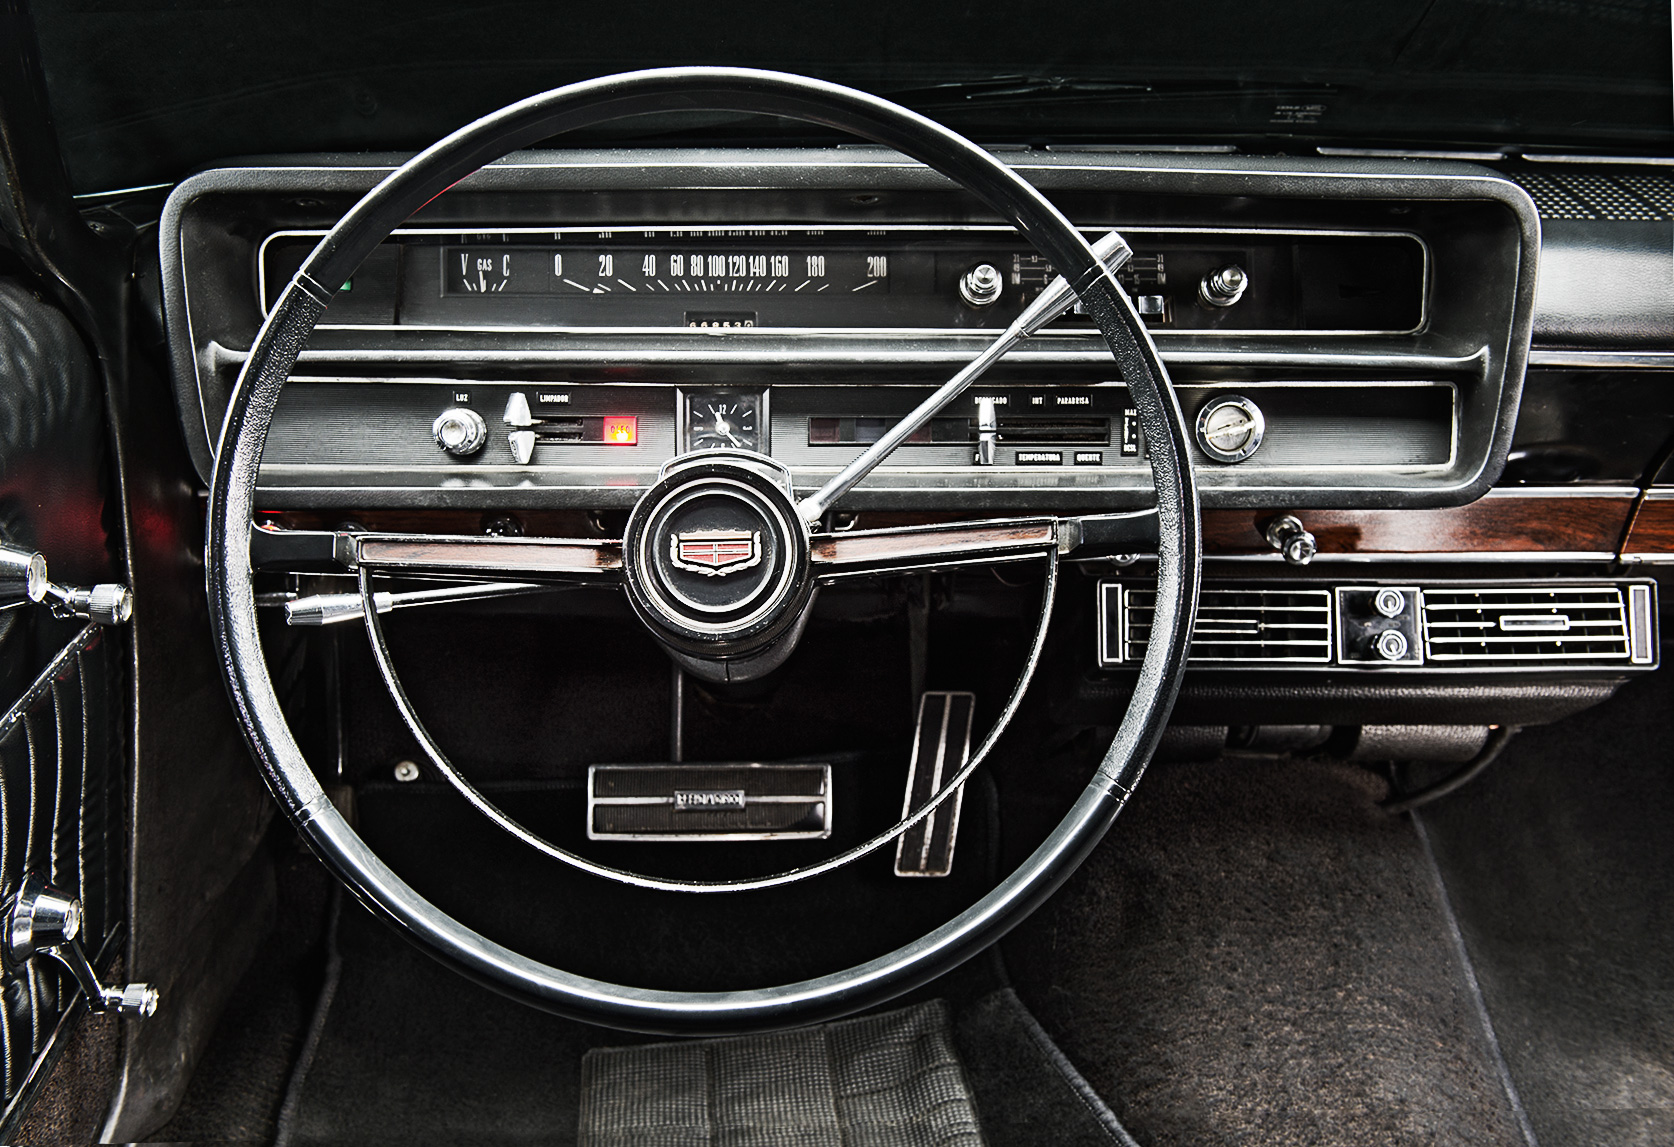 Ford Galaxie LTD